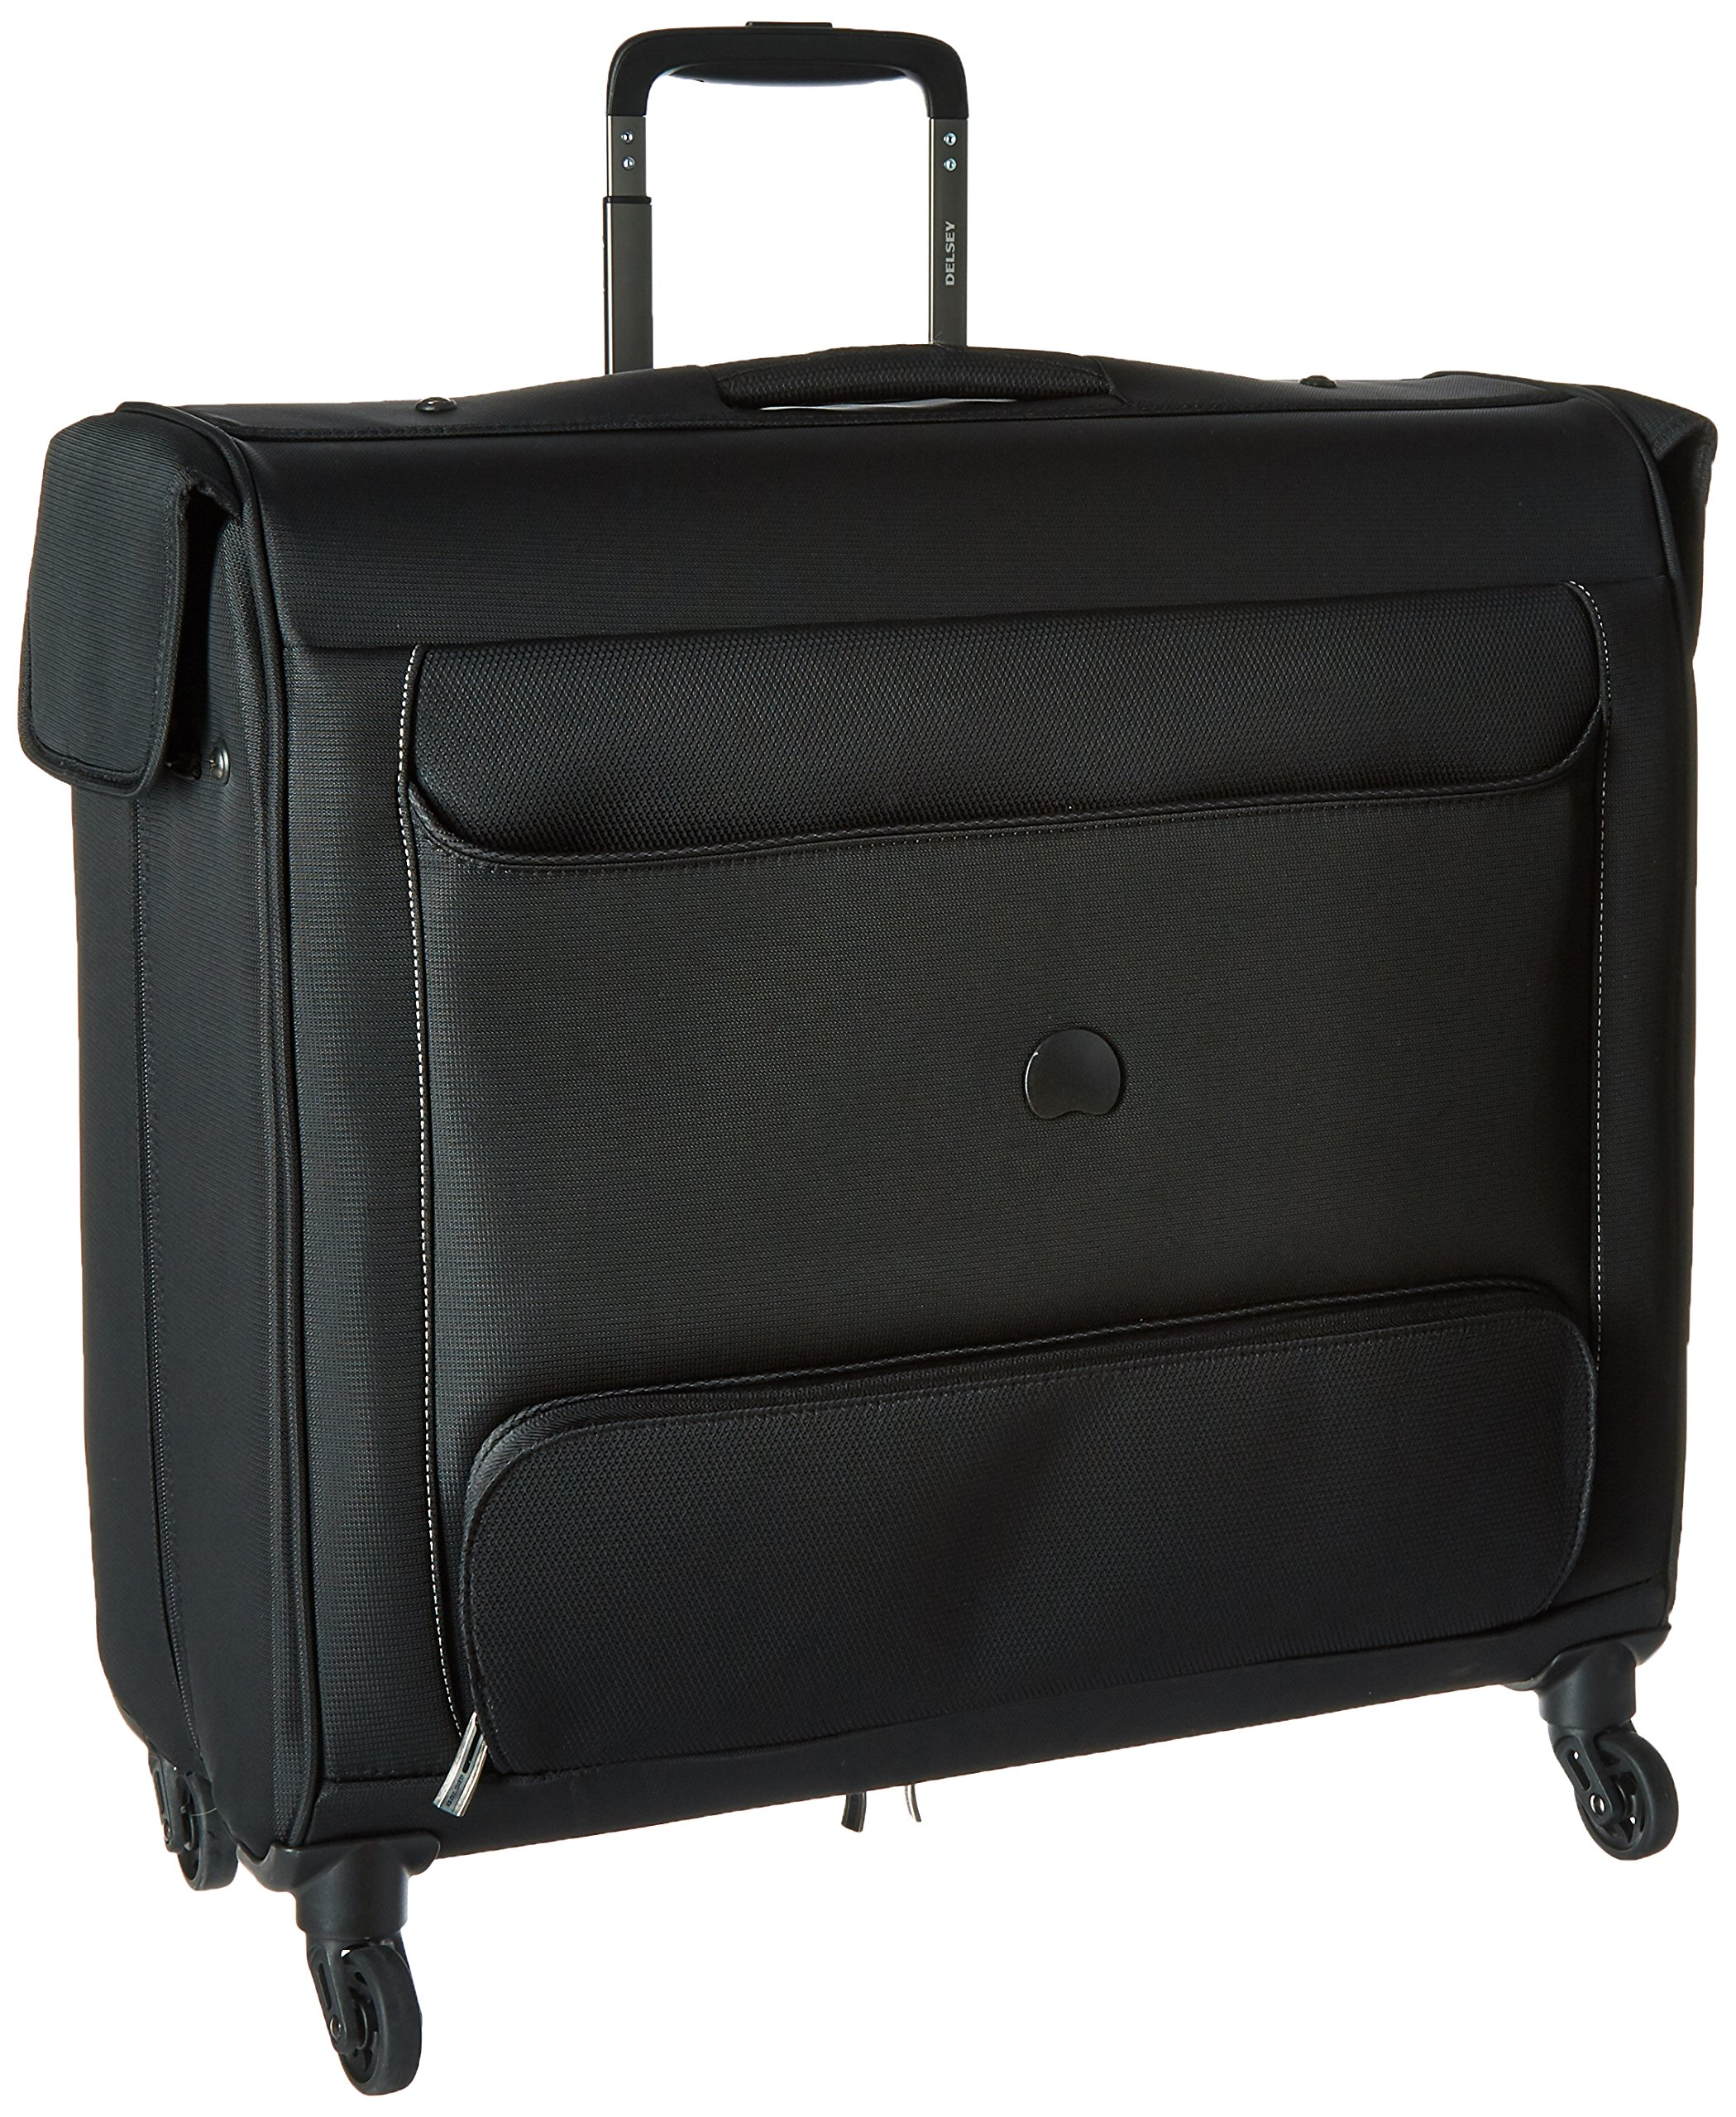 Delsey Luggage Chatillon Spinner Trolley Garment Bag, Black by DELSEY Paris